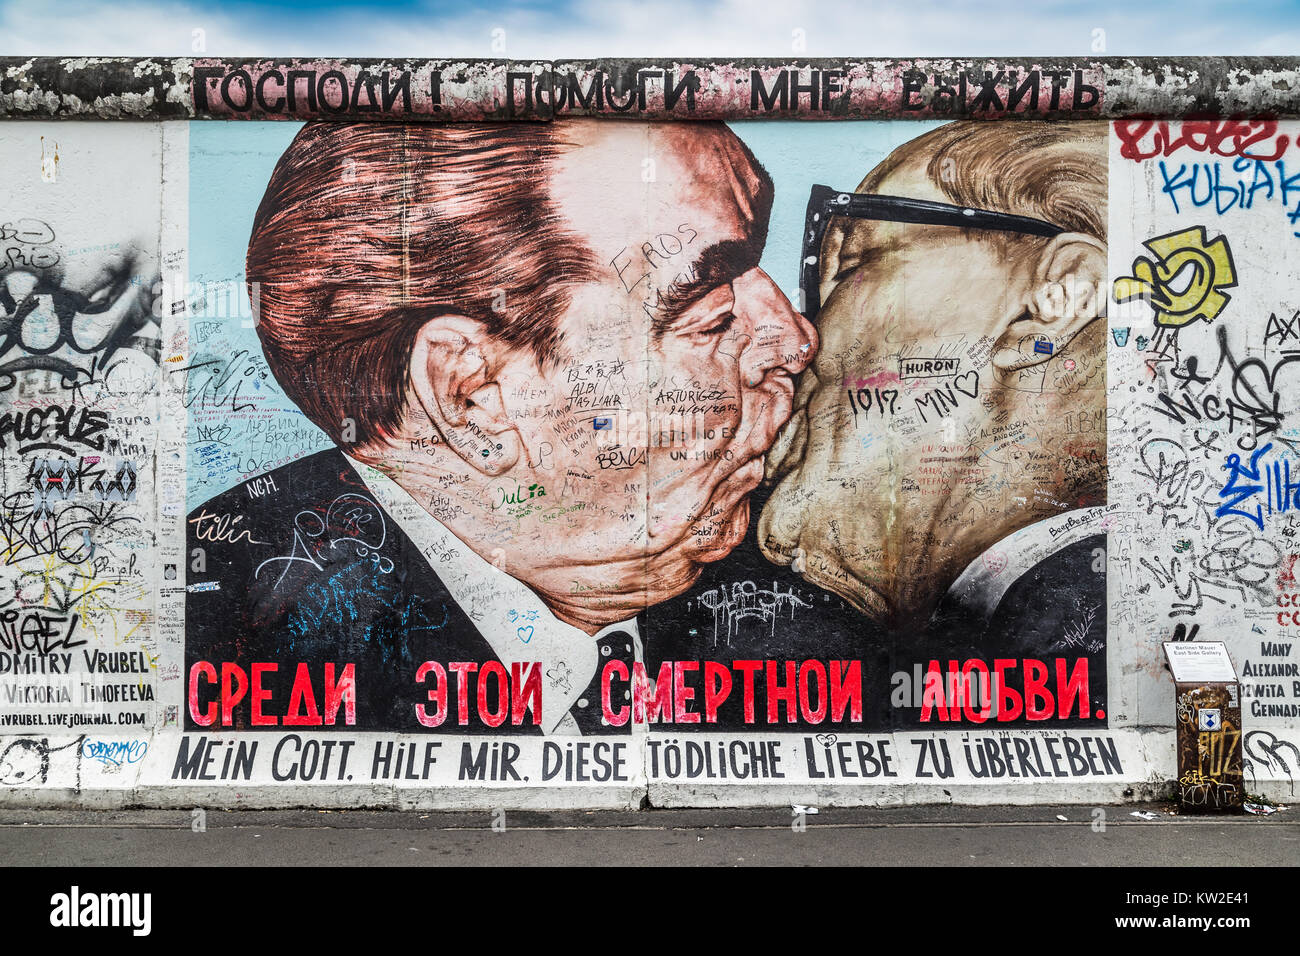 BERLIN, GERMANY - JULY 12: Street art graffiti painting 'The Kiss' by Dmitri Vrubel at famous East Side - Stock Image